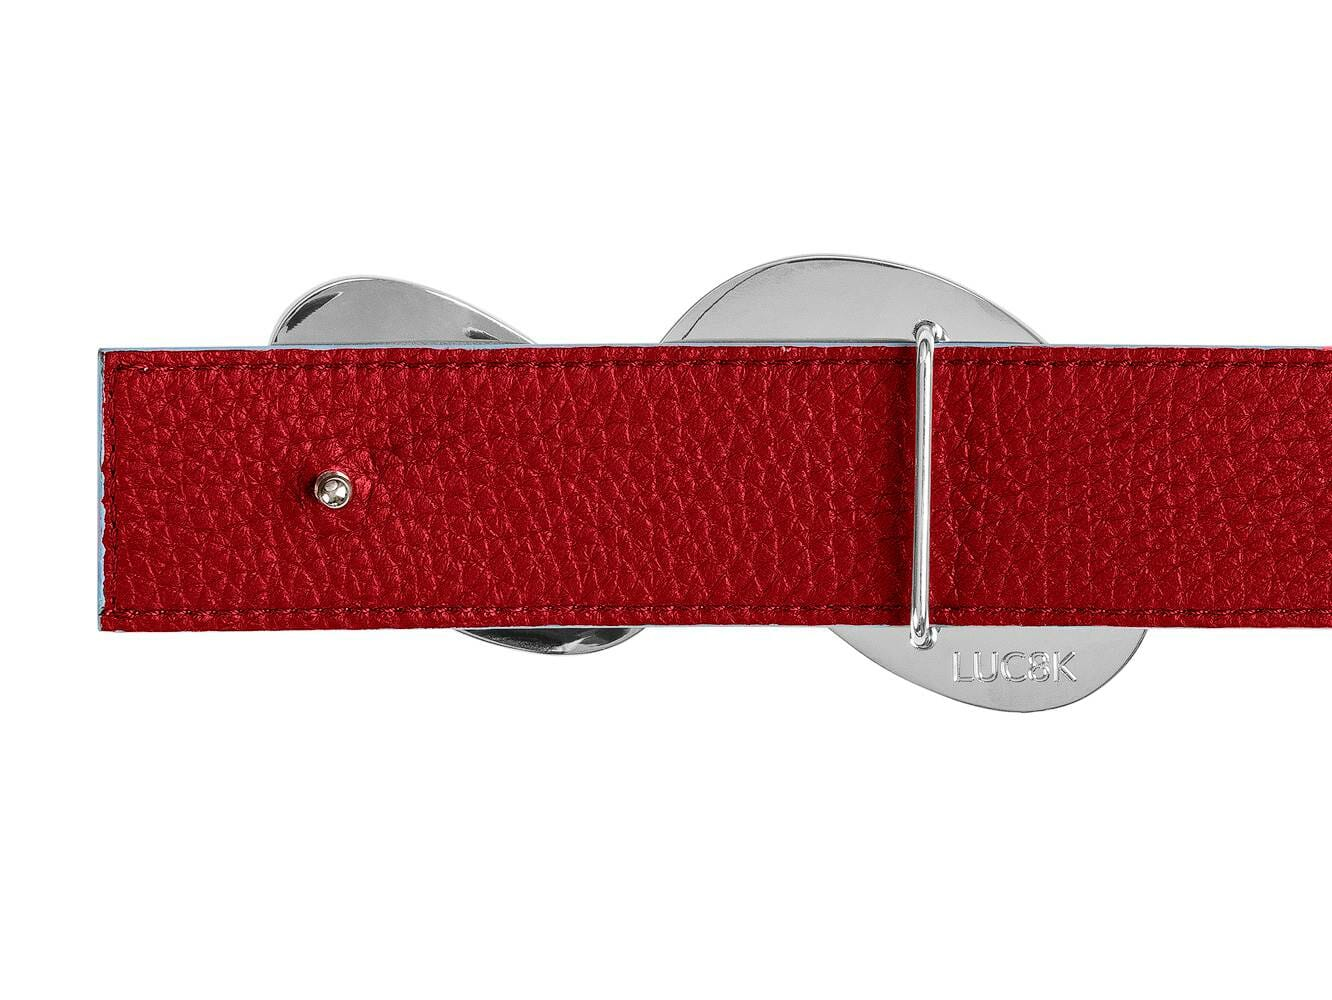 Handmade leather belt with silver buckle showing the mounting on a designer belt